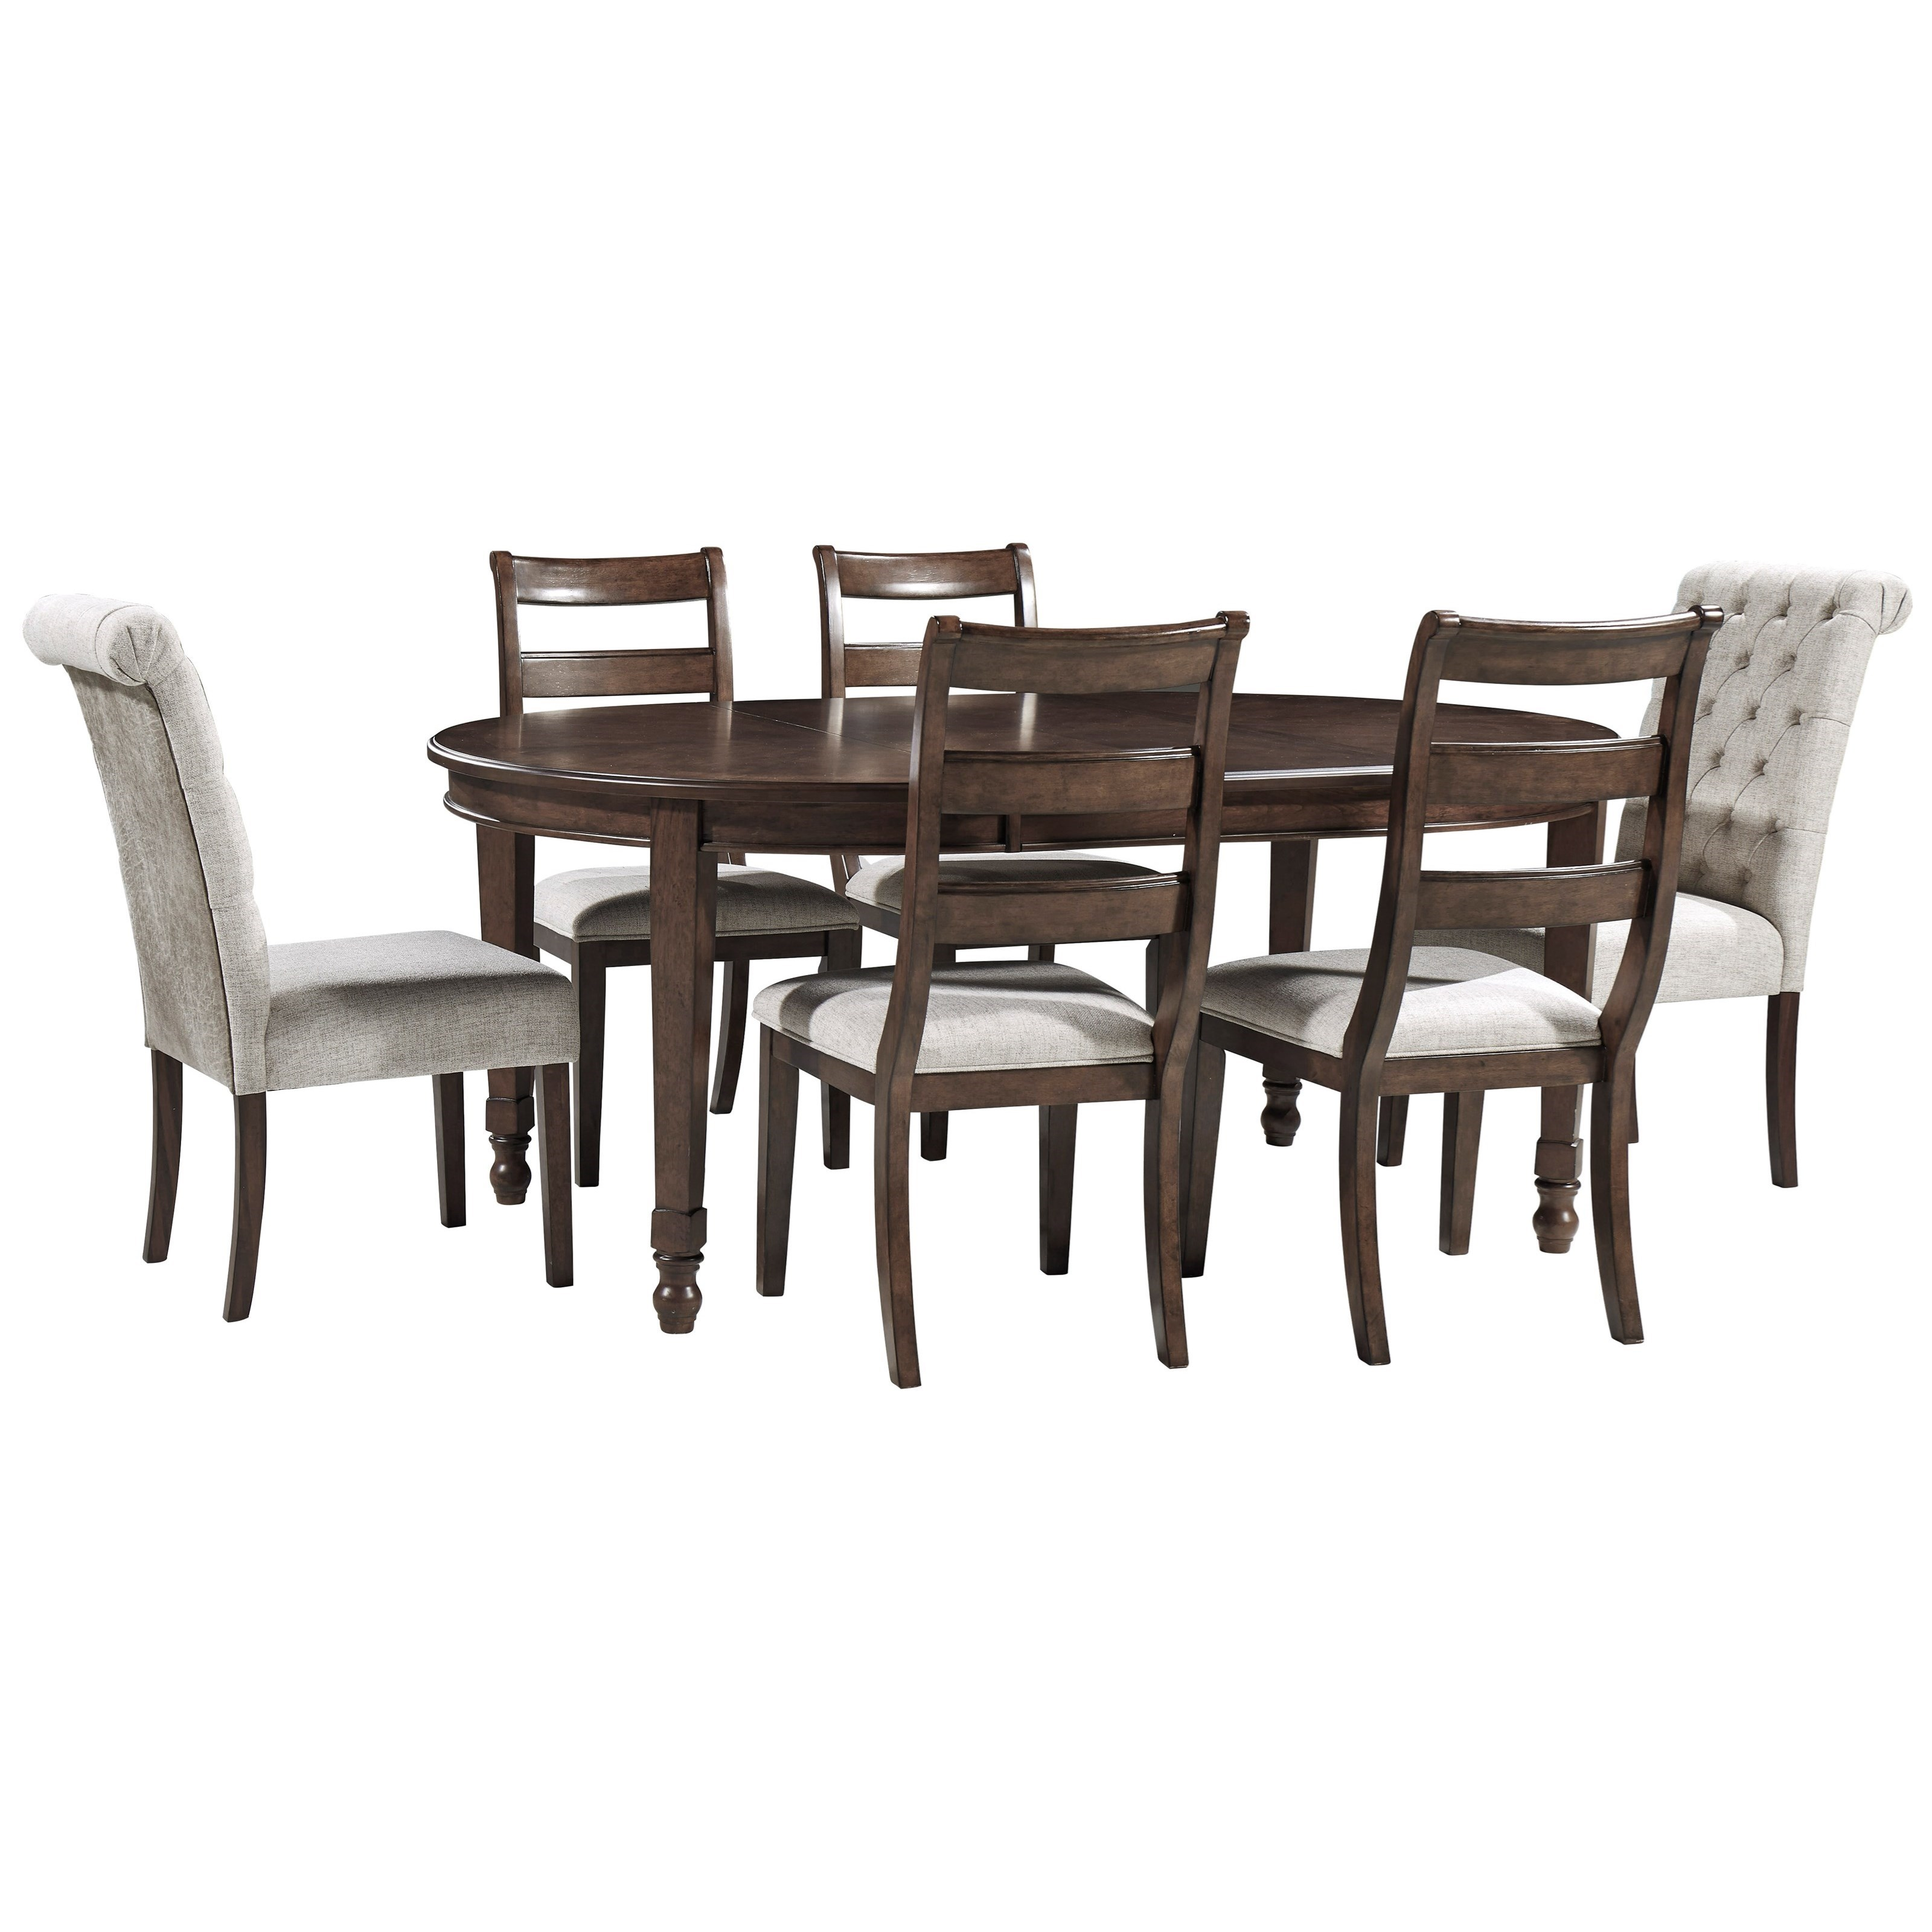 Adinton 7-Piece Table and Chair Set by Signature Design by Ashley at Pilgrim Furniture City